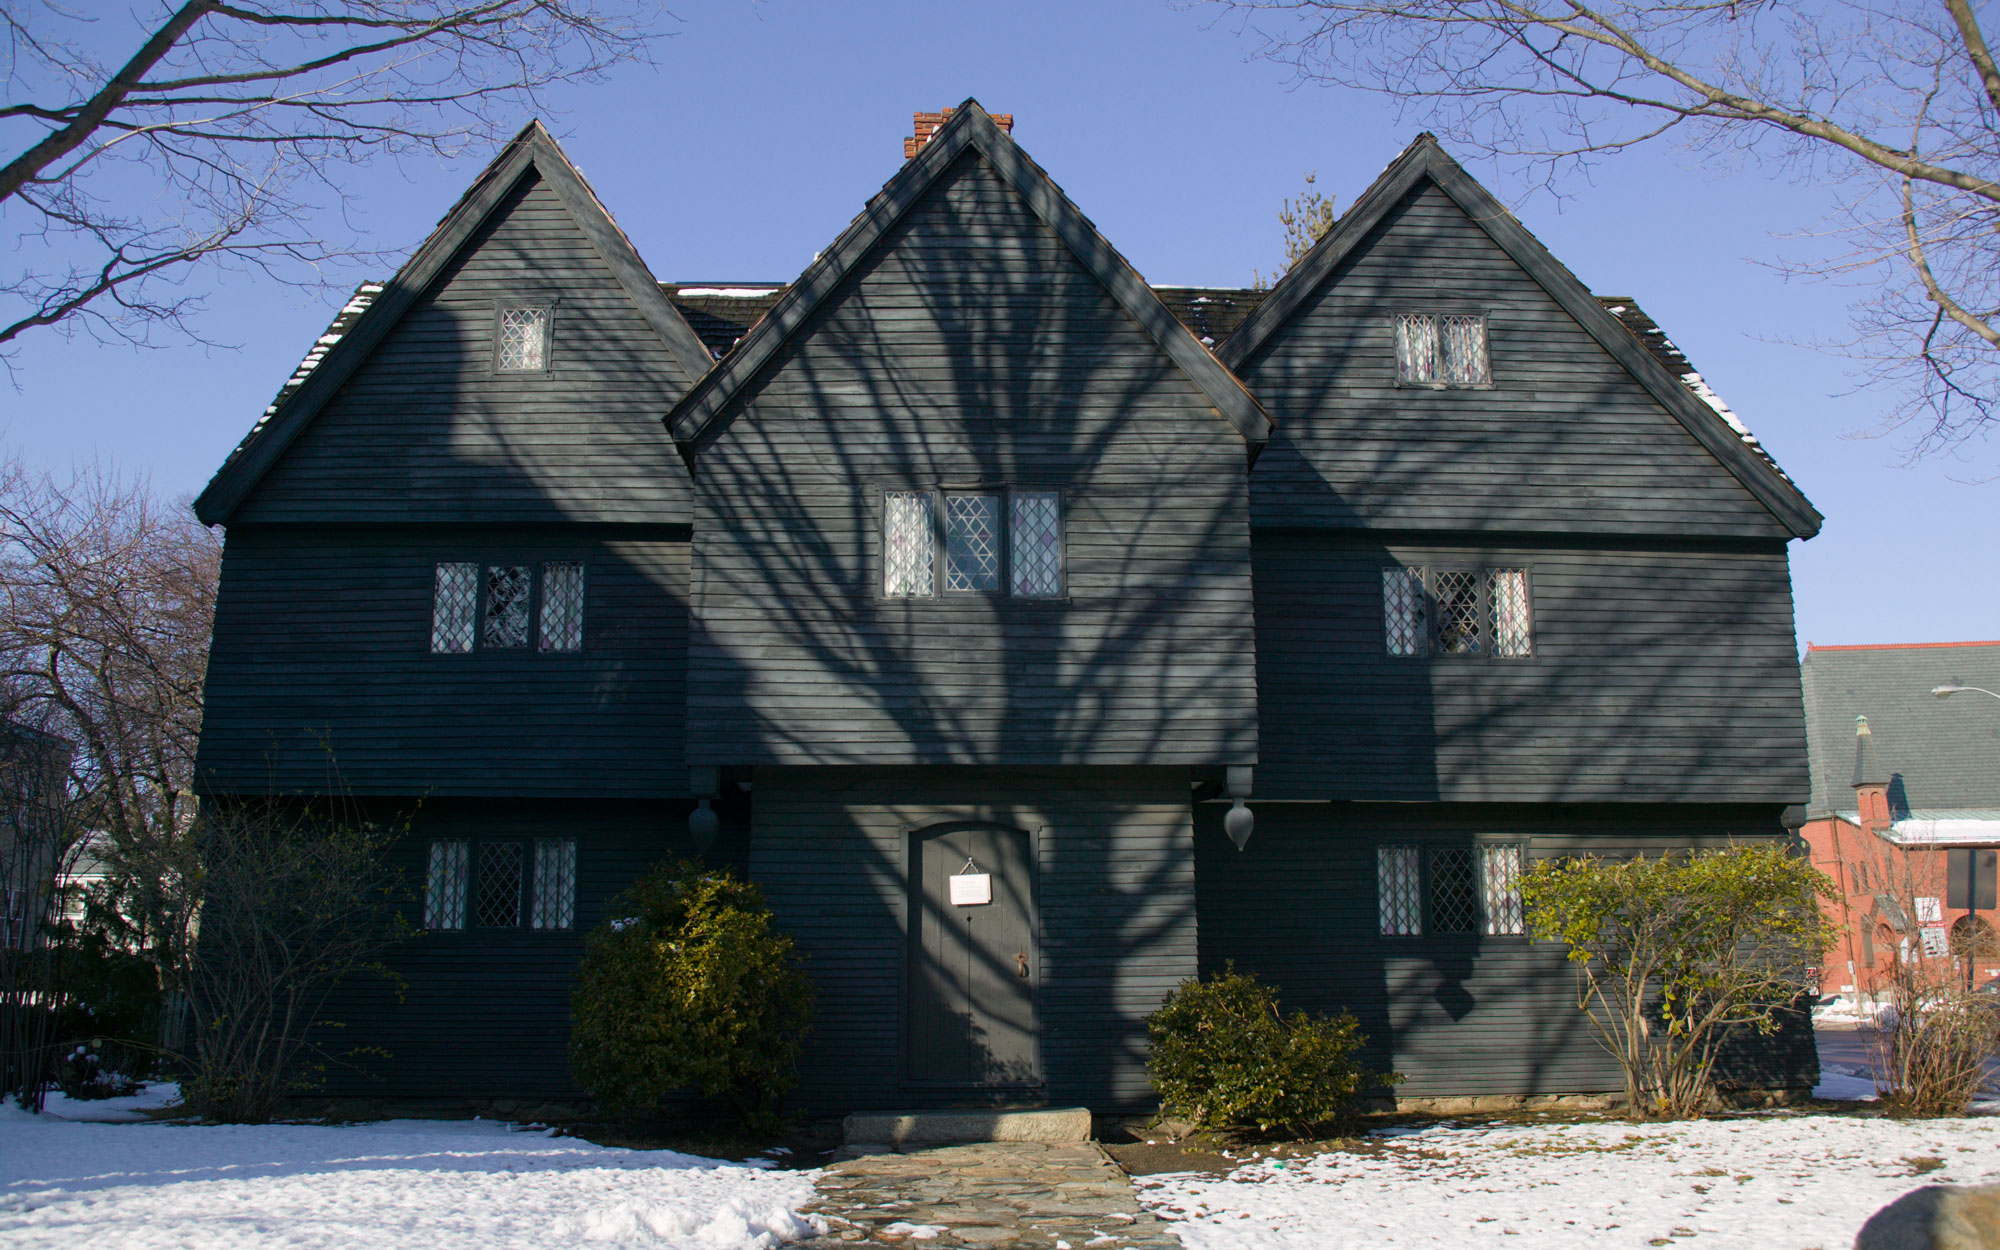 Weirdest Roadside Attractions: Massachusetts: The Witch House of Salem